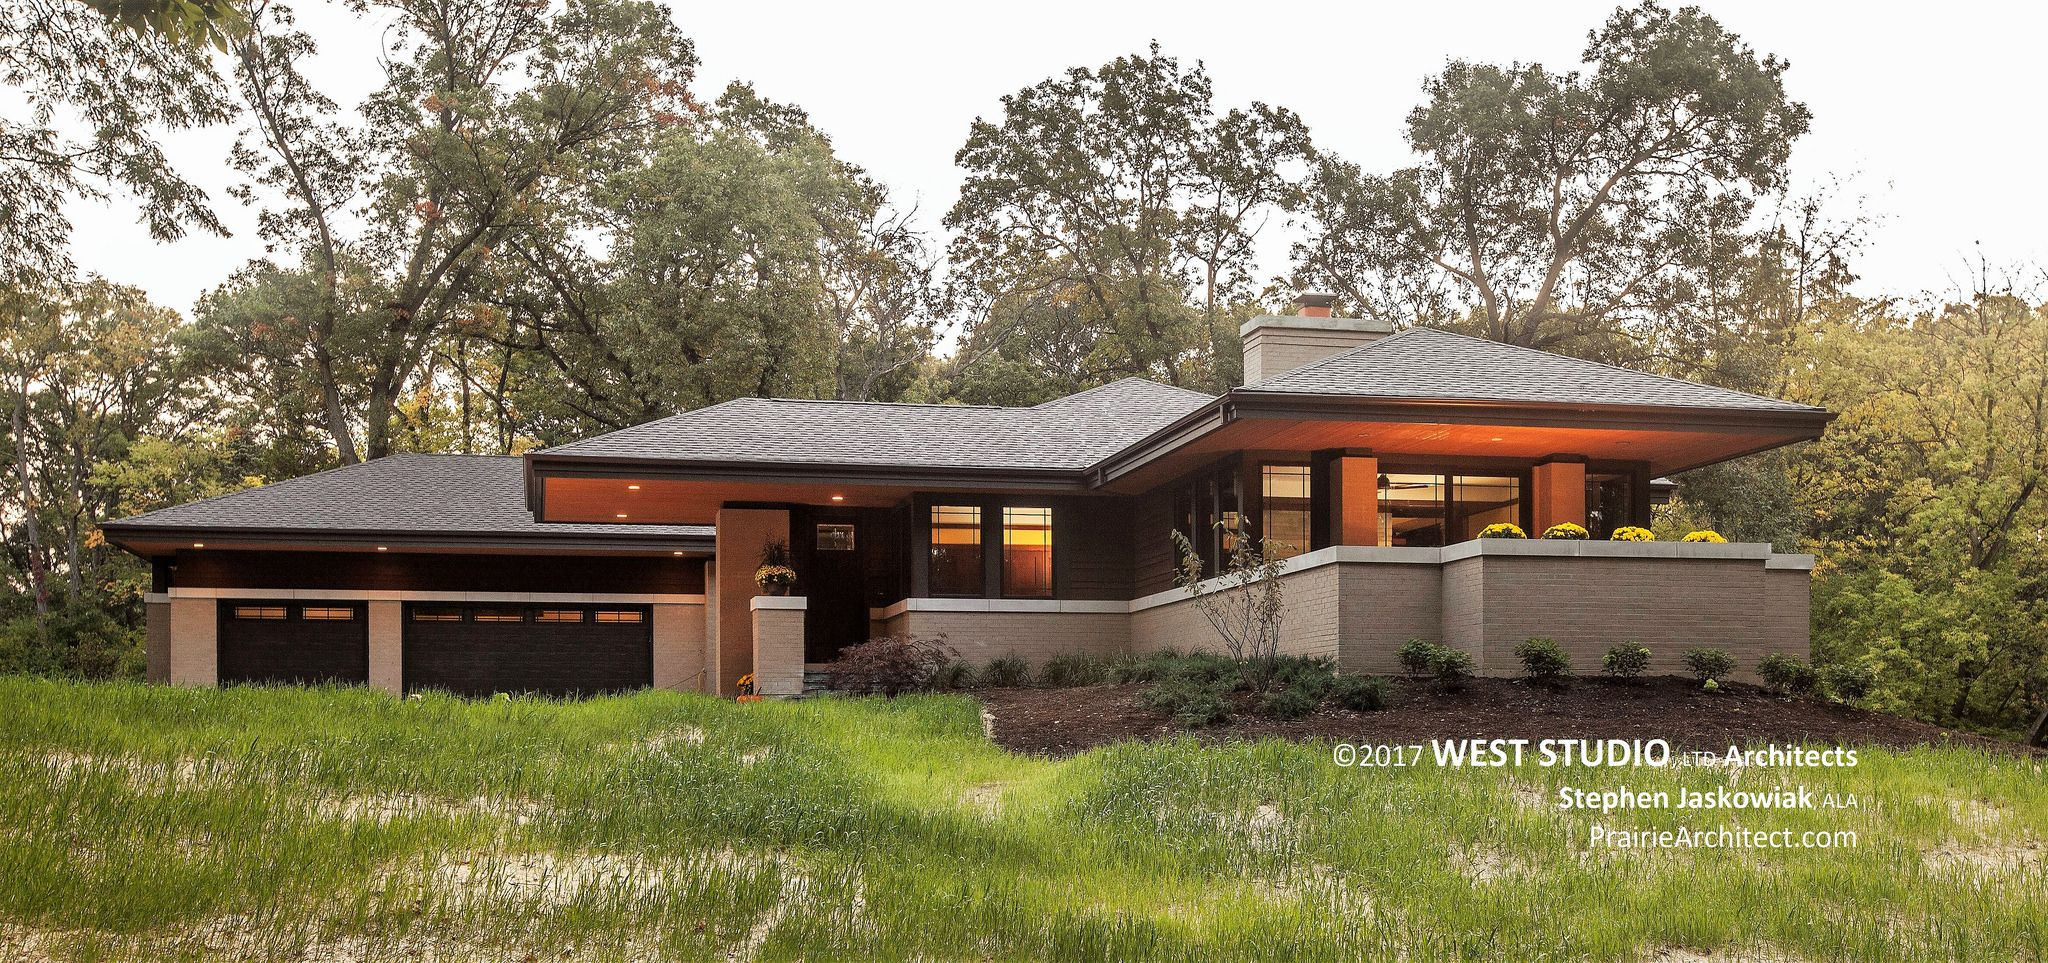 prairie style ranch homes hillside house a modern prairie style home in 2020 prairie style houses prairie style 9664